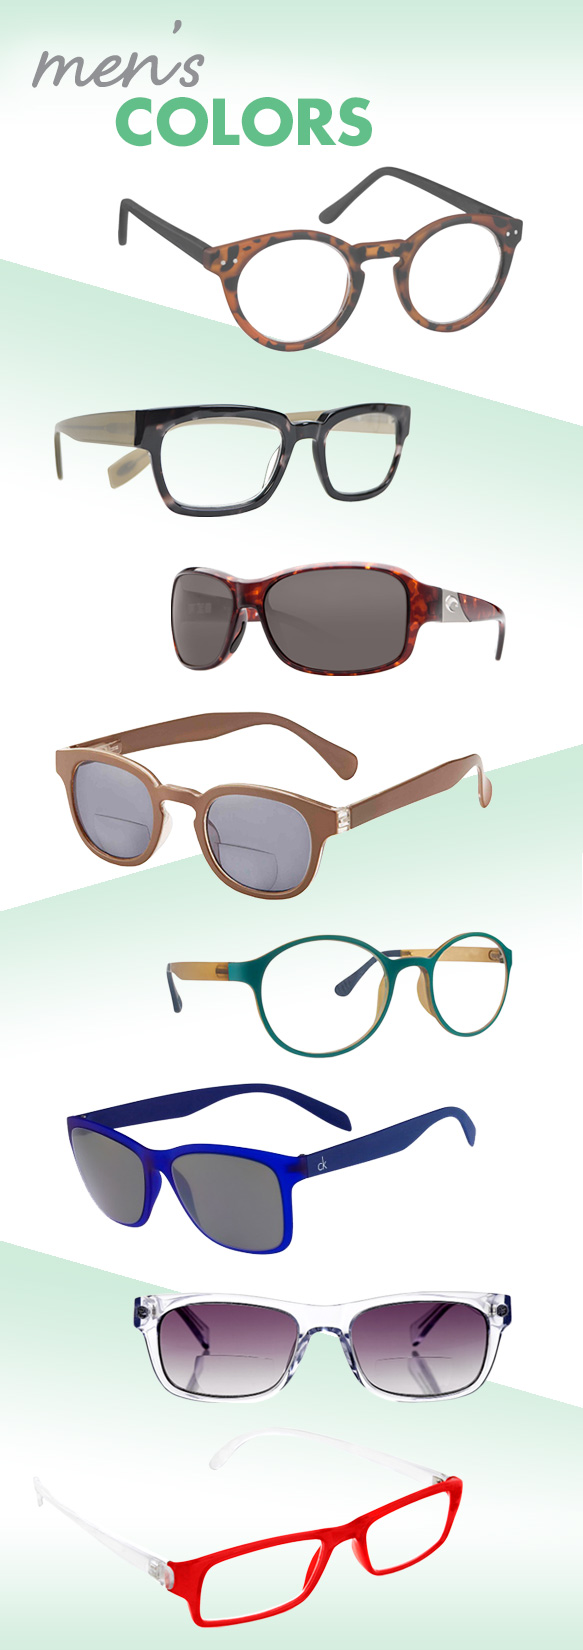 ICU Eyewear (7444), Scojo New York (Benson Street), Costa Sunglasses C-Mates (Inlet), I Heart Eyewear (Sheldon), Cinzia (Heirloom), Calvin Klein Platinum (CKR3171), eyebobs (Style Guy), Desert Sunglass of Scottsdale (RG19091)